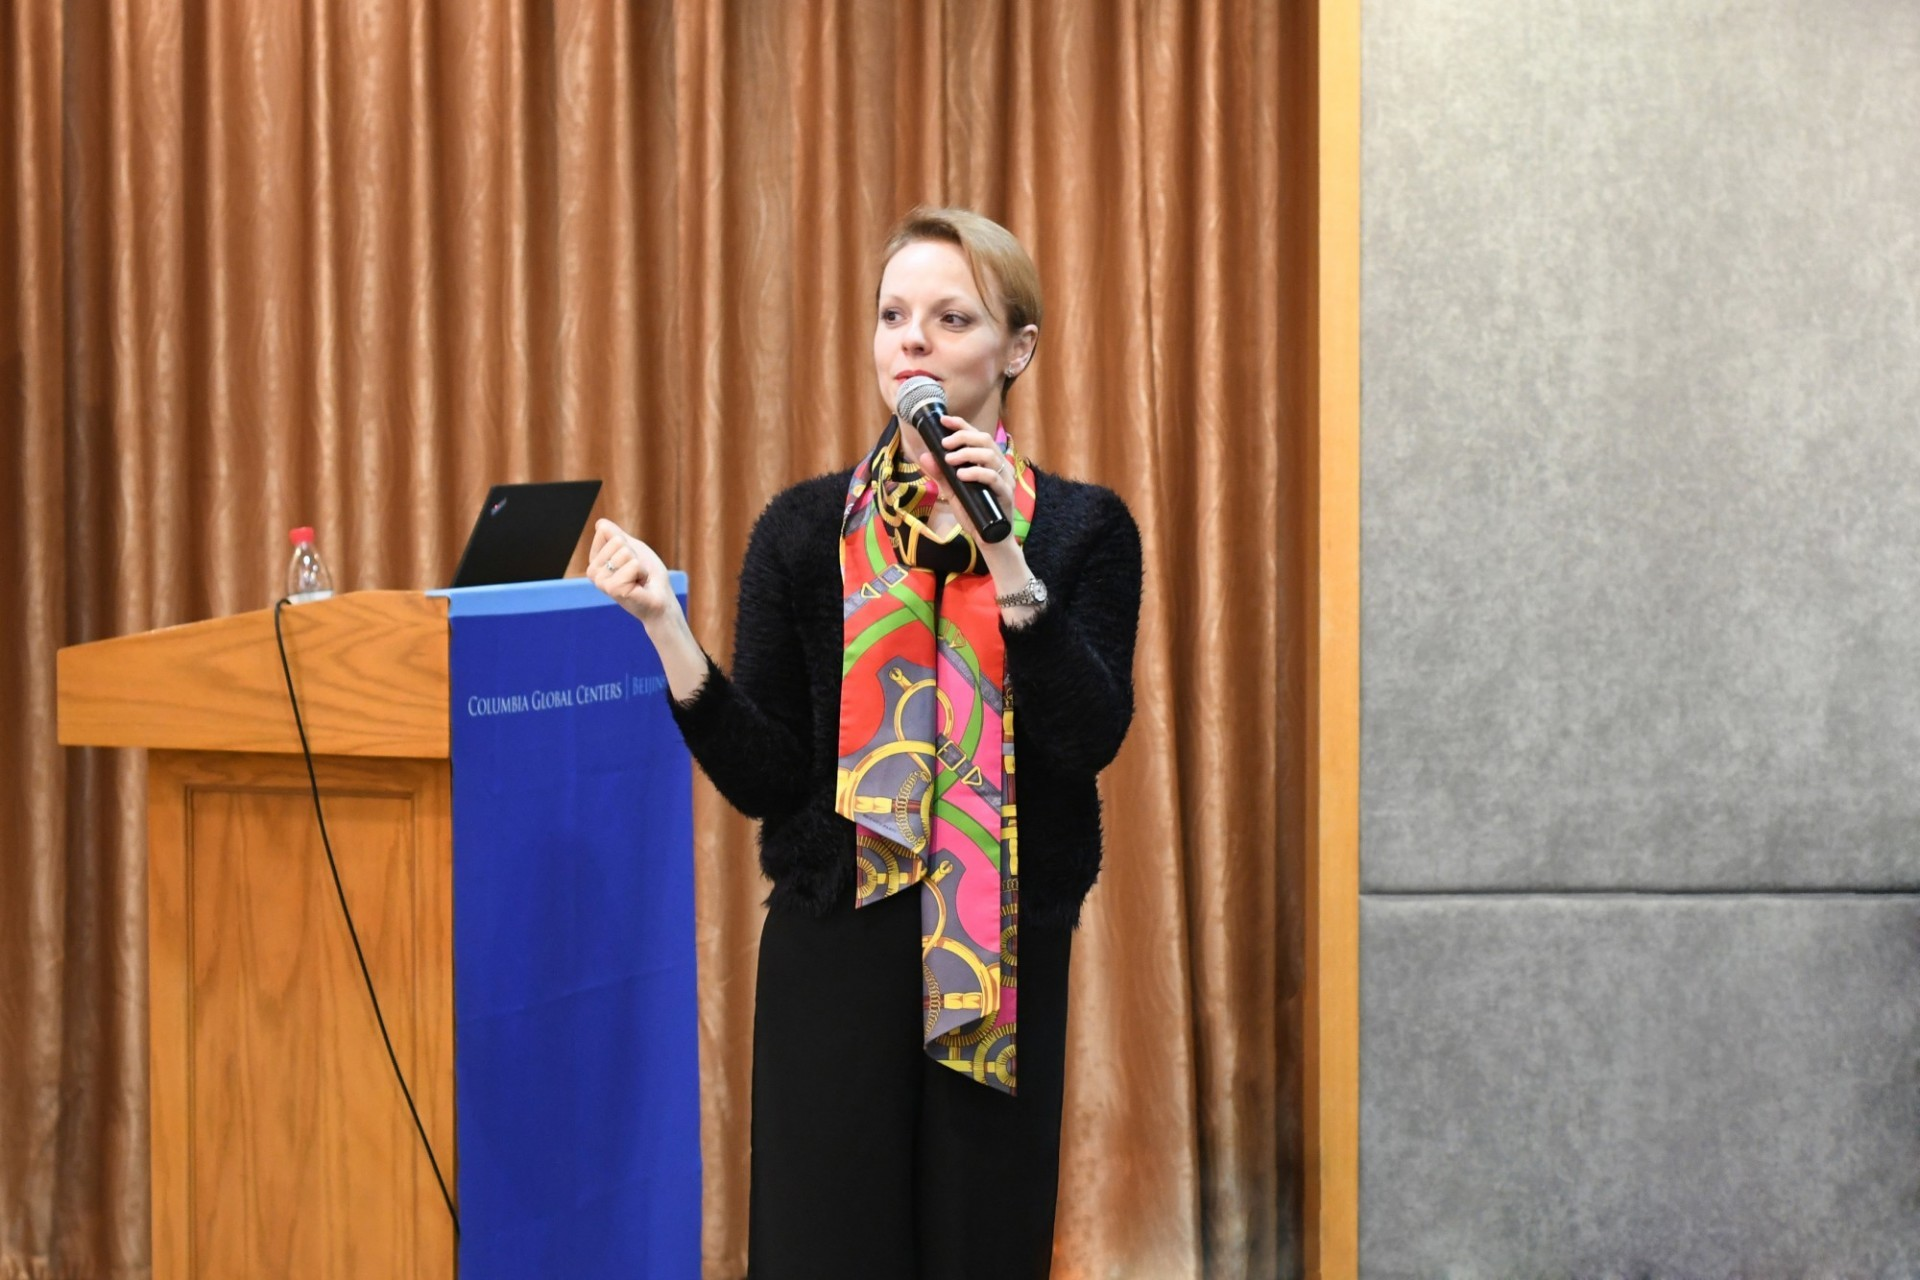 Dr. Magdalena Stern-Baczewska performs a recital and hosts a public lecture on Martial Arts Trilogy